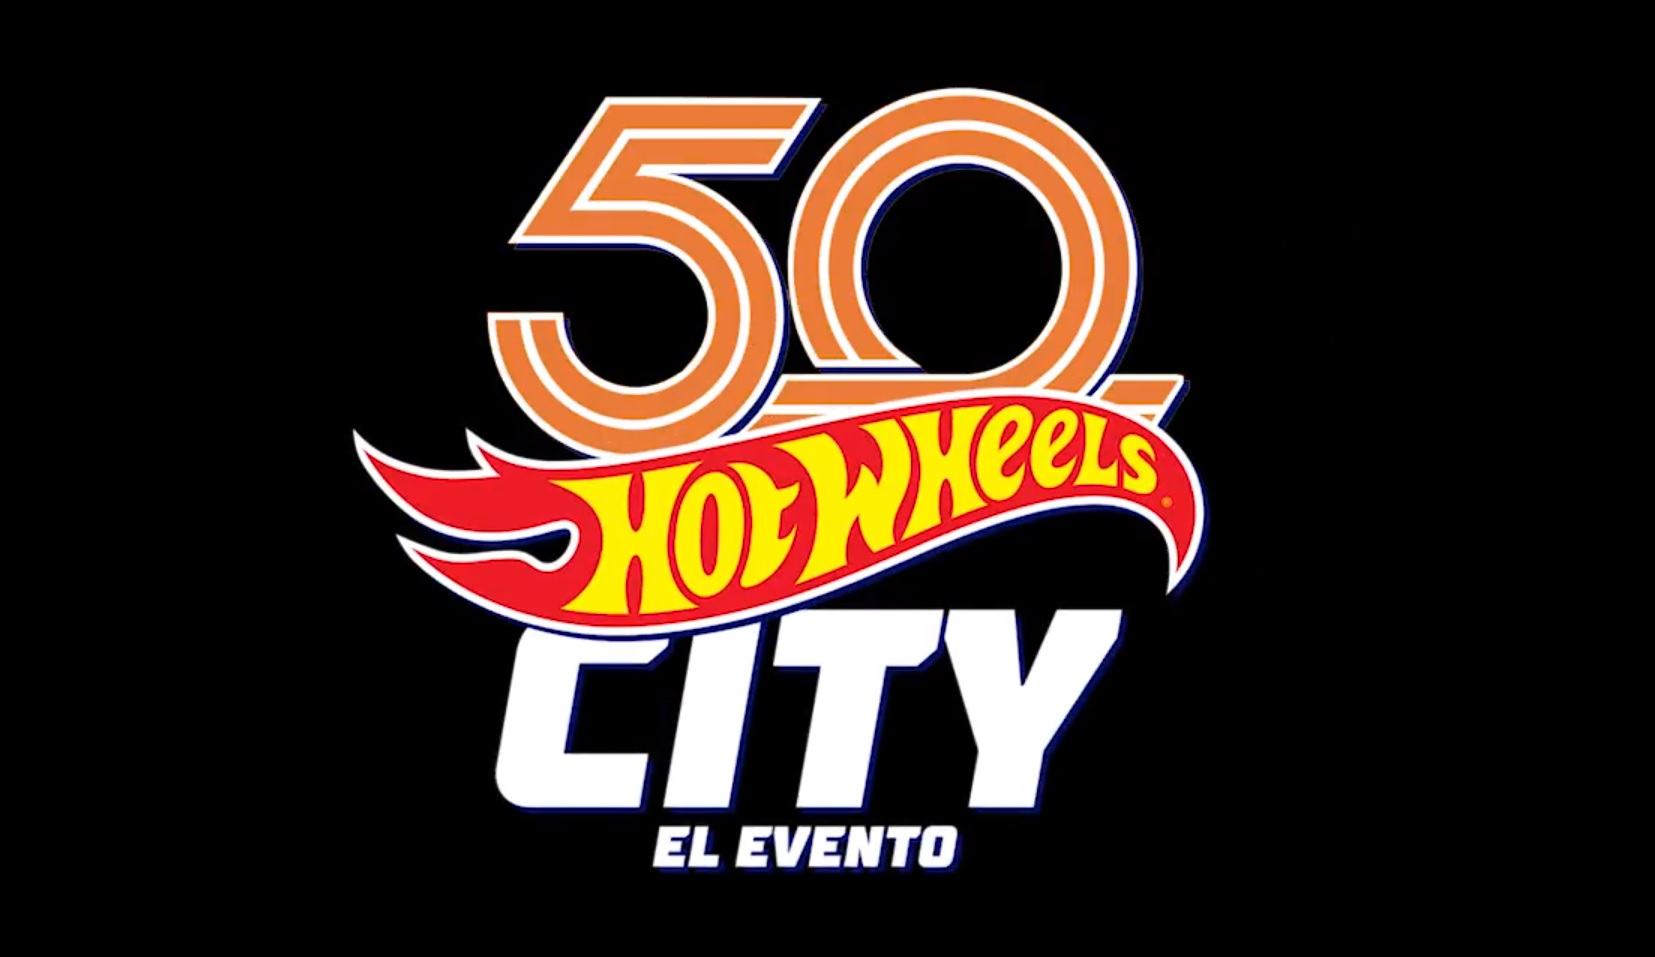 Gana entradas para Hot Wheels City, El Evento [CONCURSOS]